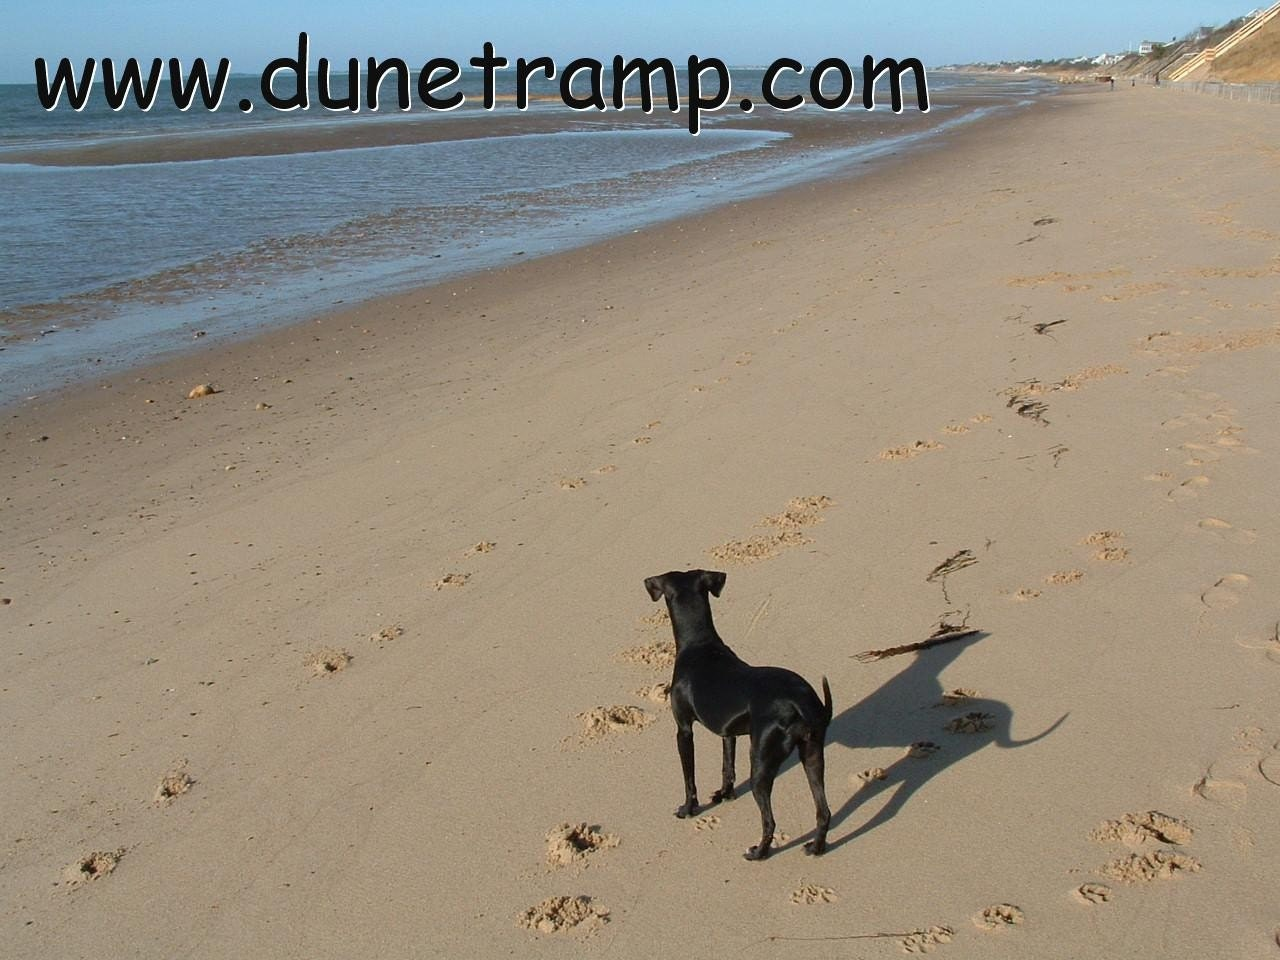 BAYSIDE Cape Cod Dune Dog Photograph 5x7, Matted, Signed